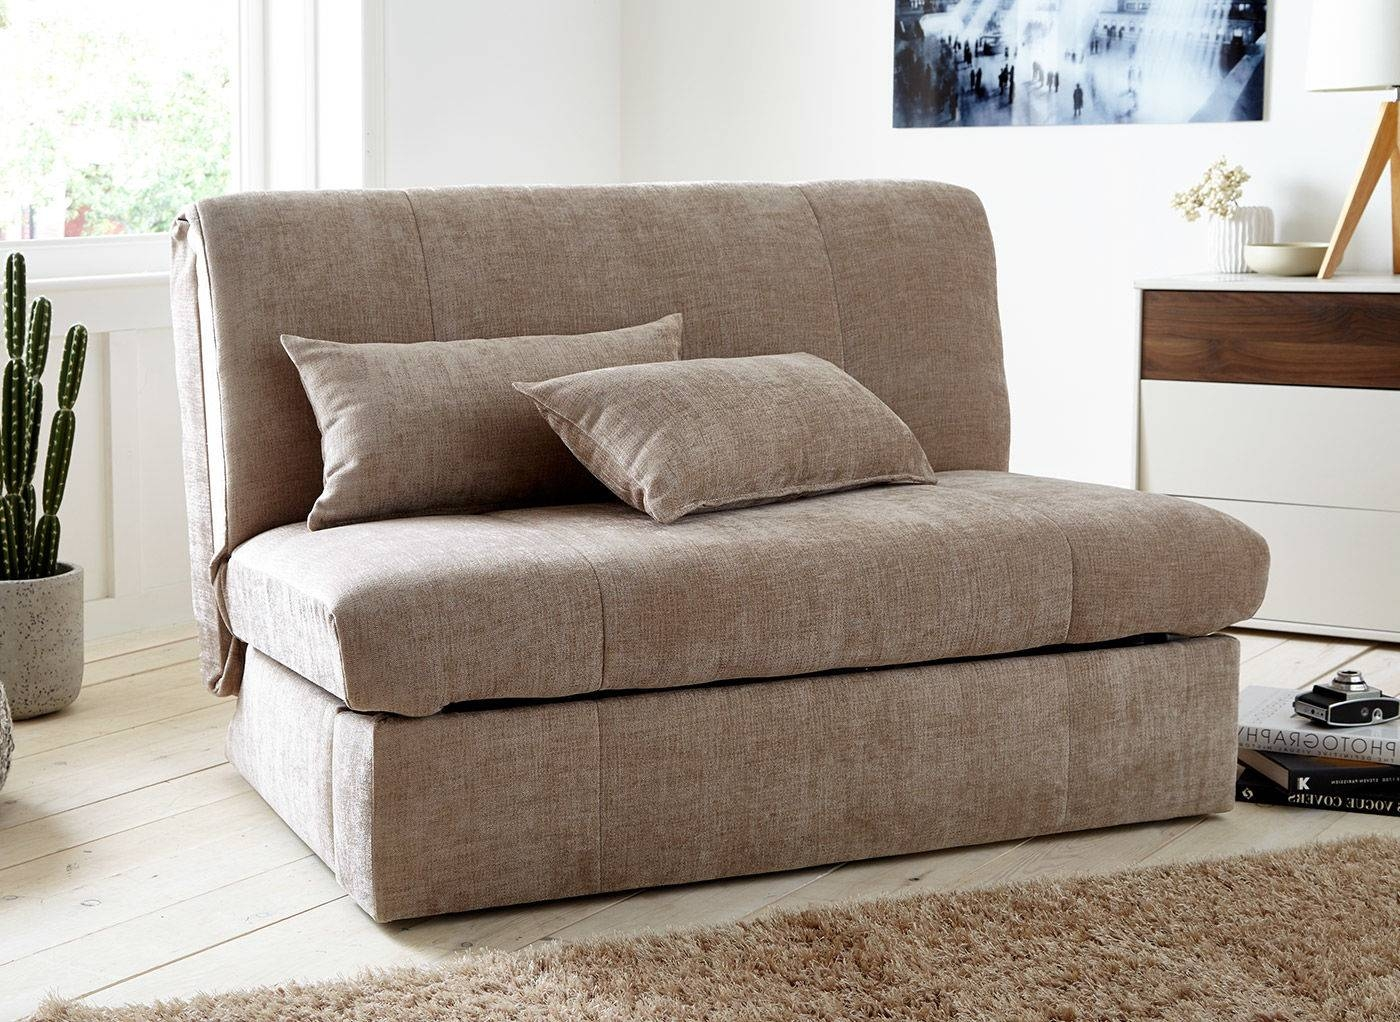 office sofa bed. simple sofa sofas center  imposing office sofa picture concept for officesofa for  luxury beds image throughout bed